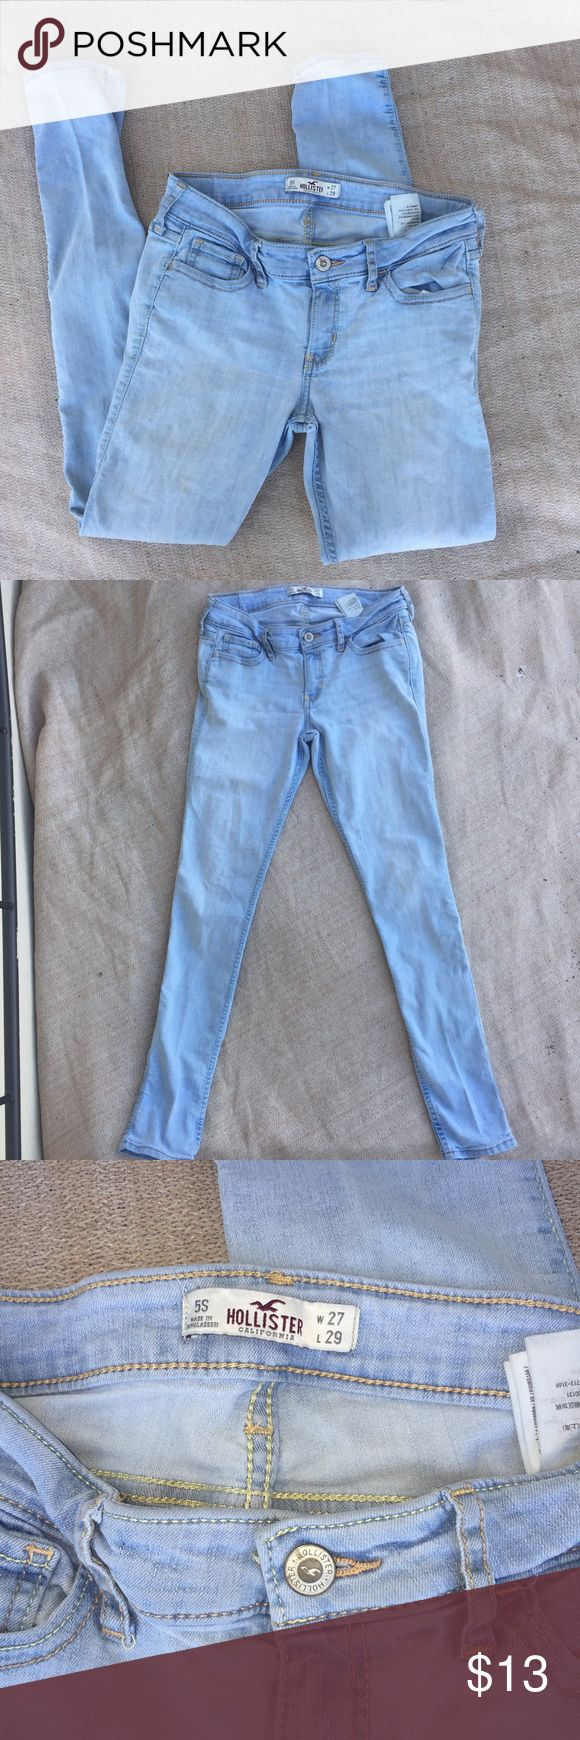 Hollister Light Wash Skinny Jeans Hollister light wash skinny jeans. Size 5s. W27 L29. Hollister Jeans Skinny